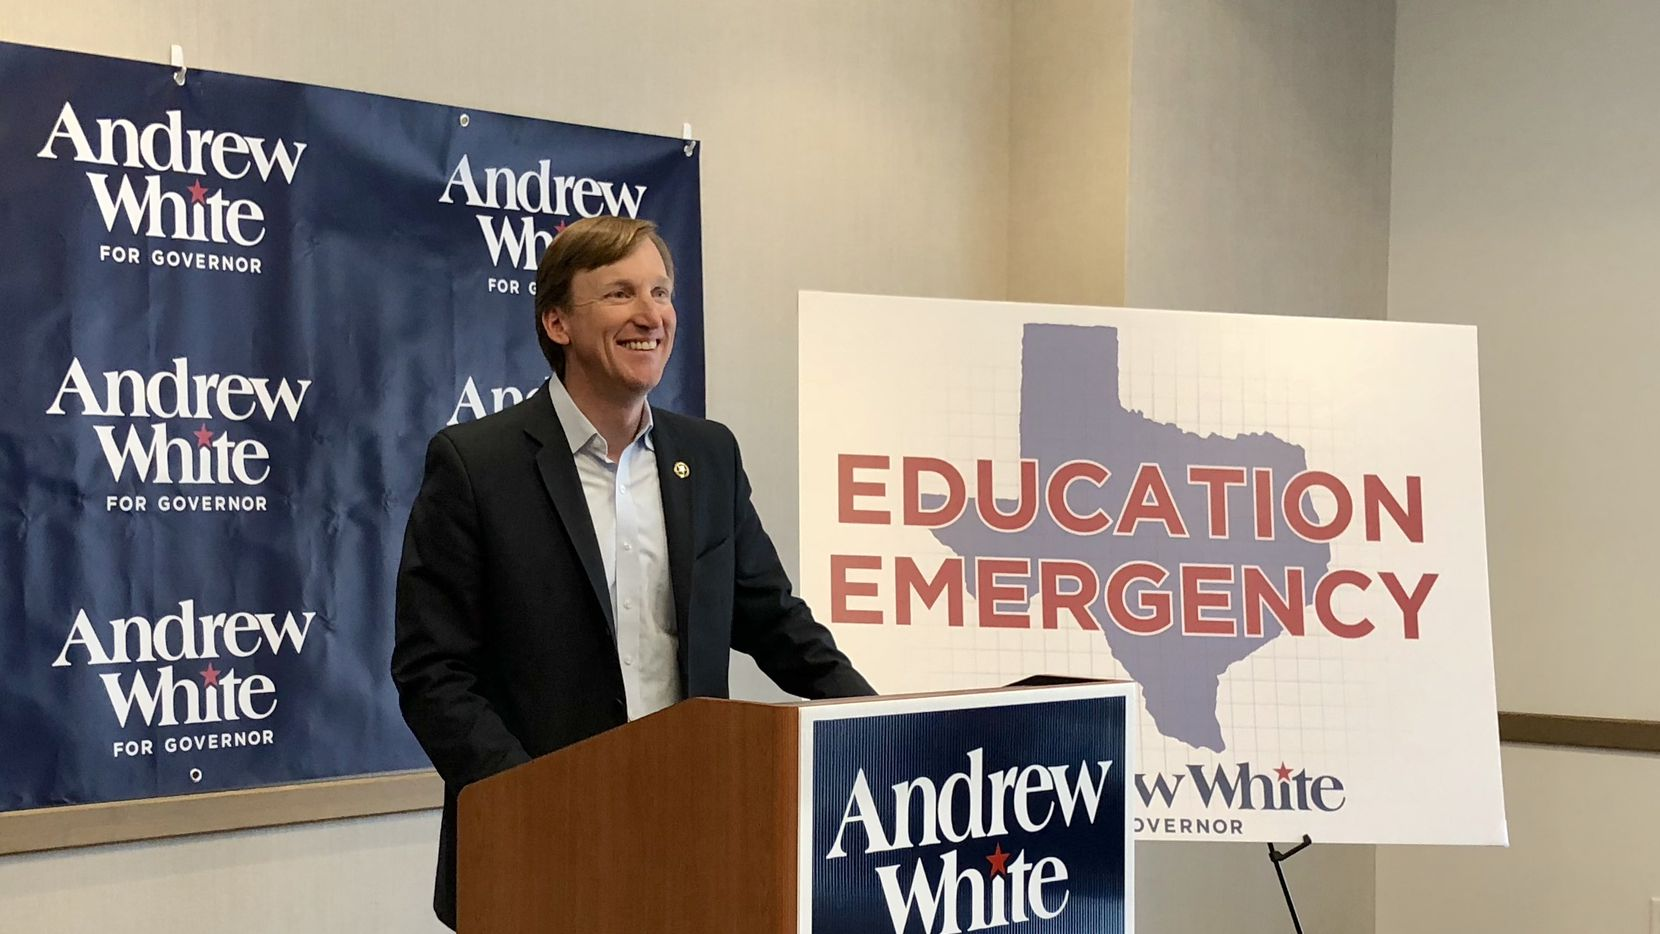 Andrew White, who is facing former Lupe Valdez in the Democratic primary runoff governor, has proposed expanding casinos and horse racing to help fund education.